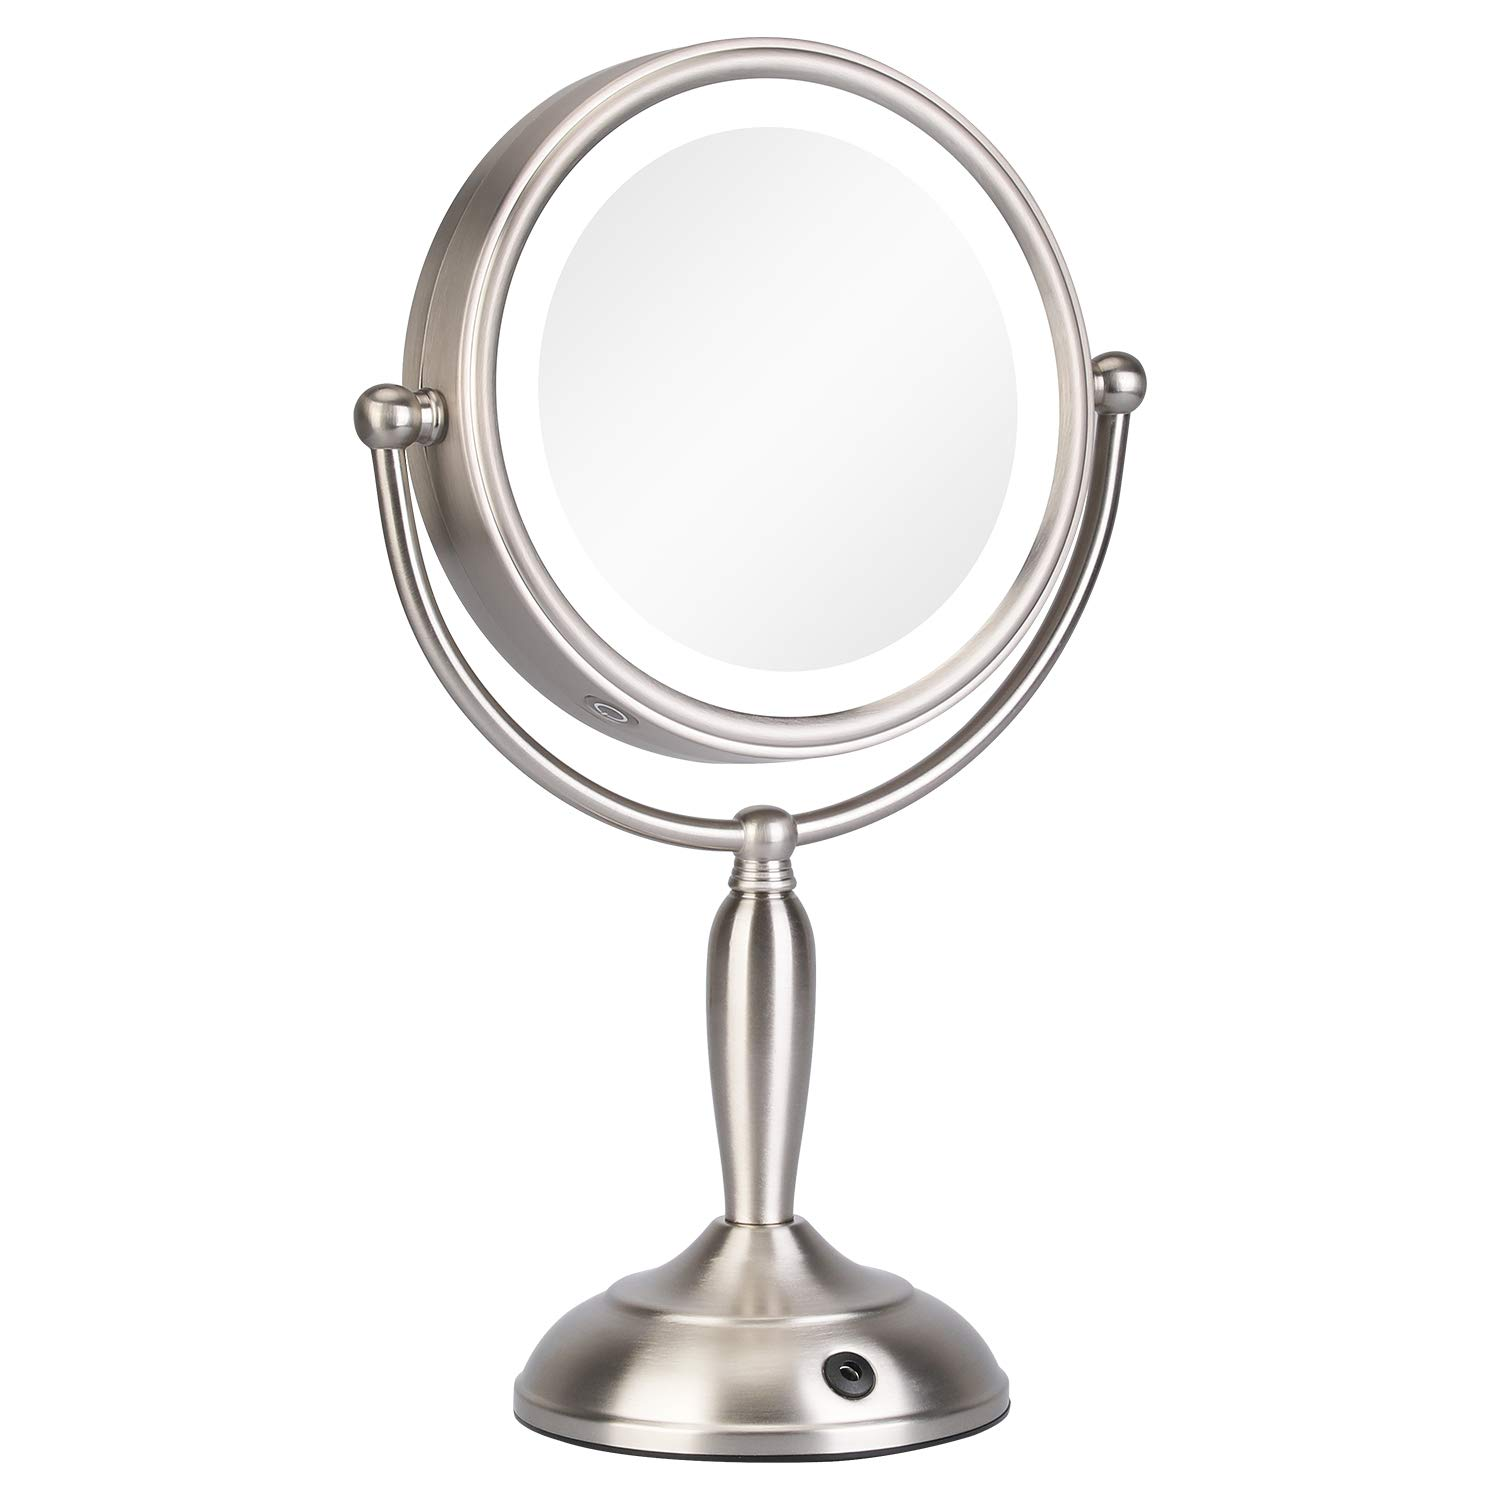 KEDSUM 8 Inch 1X/10X Lighted Magnifying Makeup Mirror with 3 Lighting Modes, Double Sided Magnification Vanity Mirror with Lights, Cordless Tabletop Mirror, Touch Button & Dual Power Supply by KEDSUM